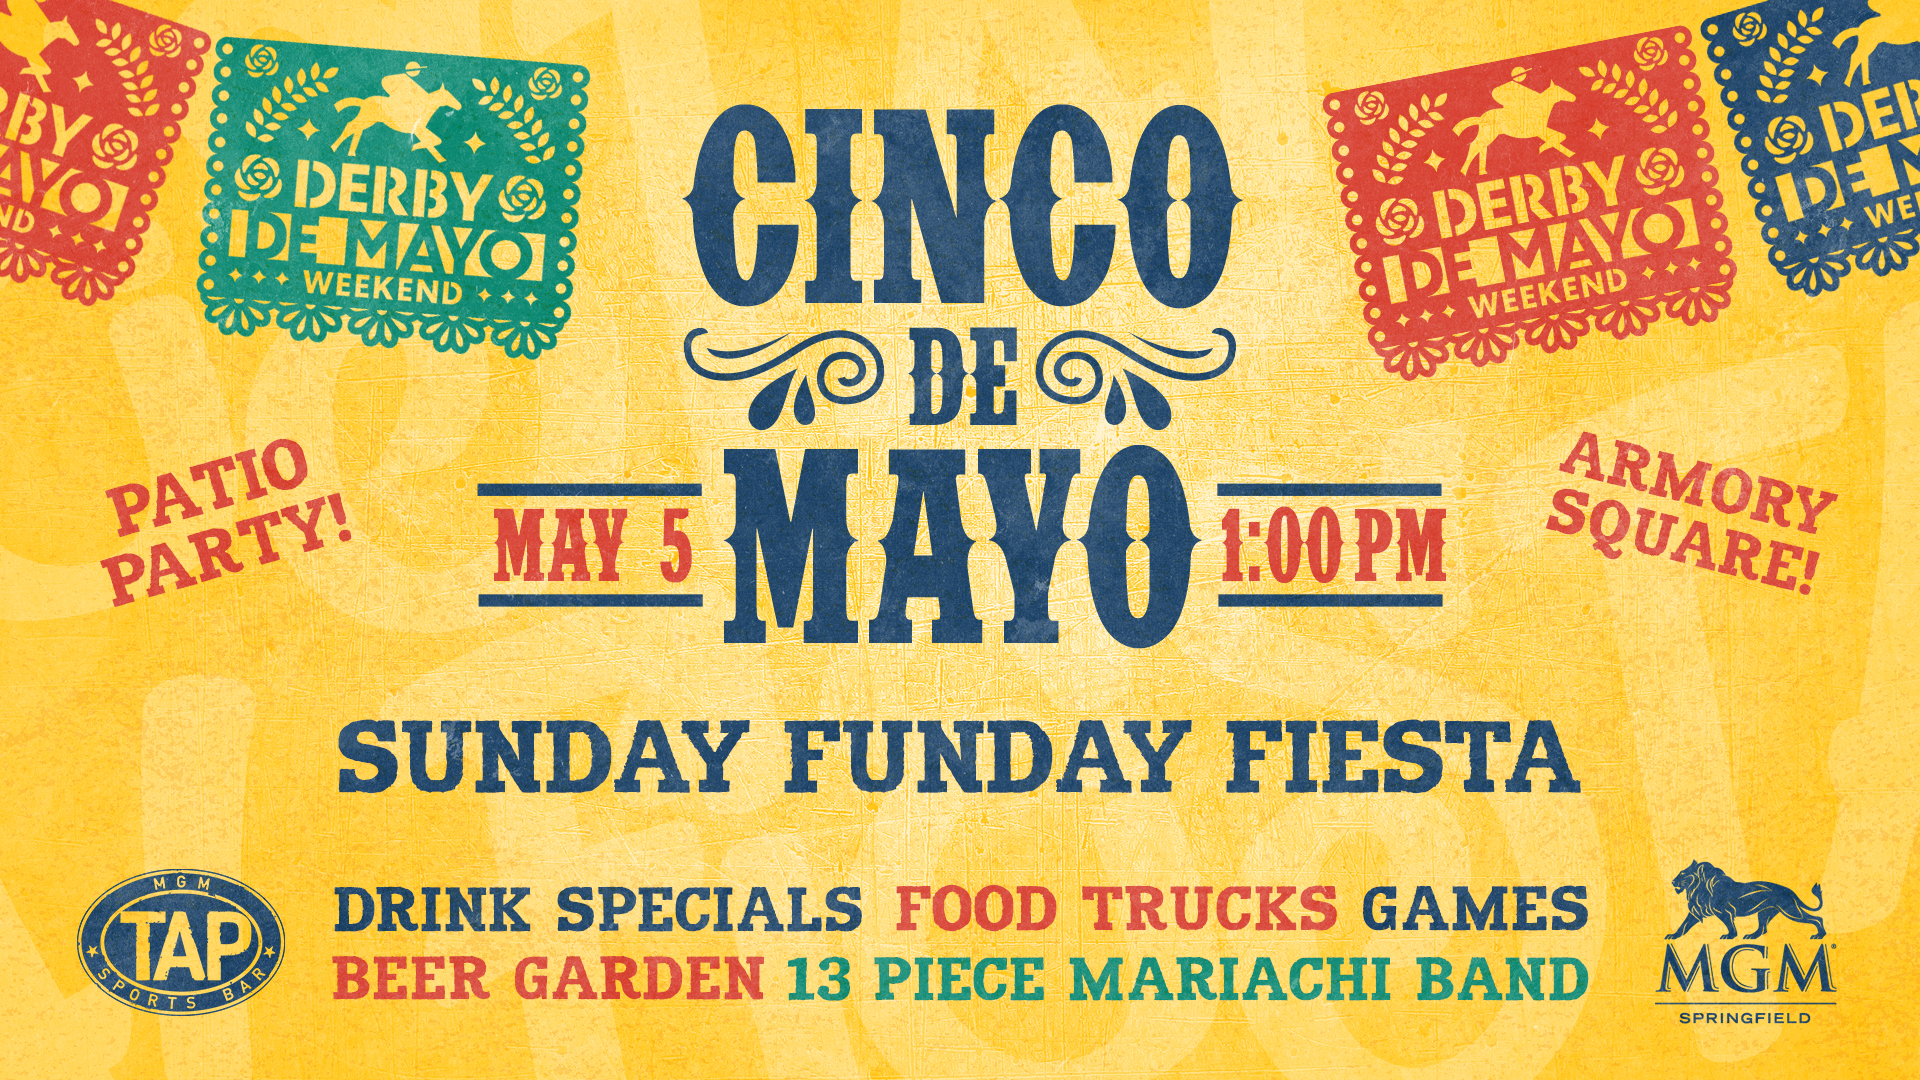 Digital screen used to promote Cinco de Mayo Party